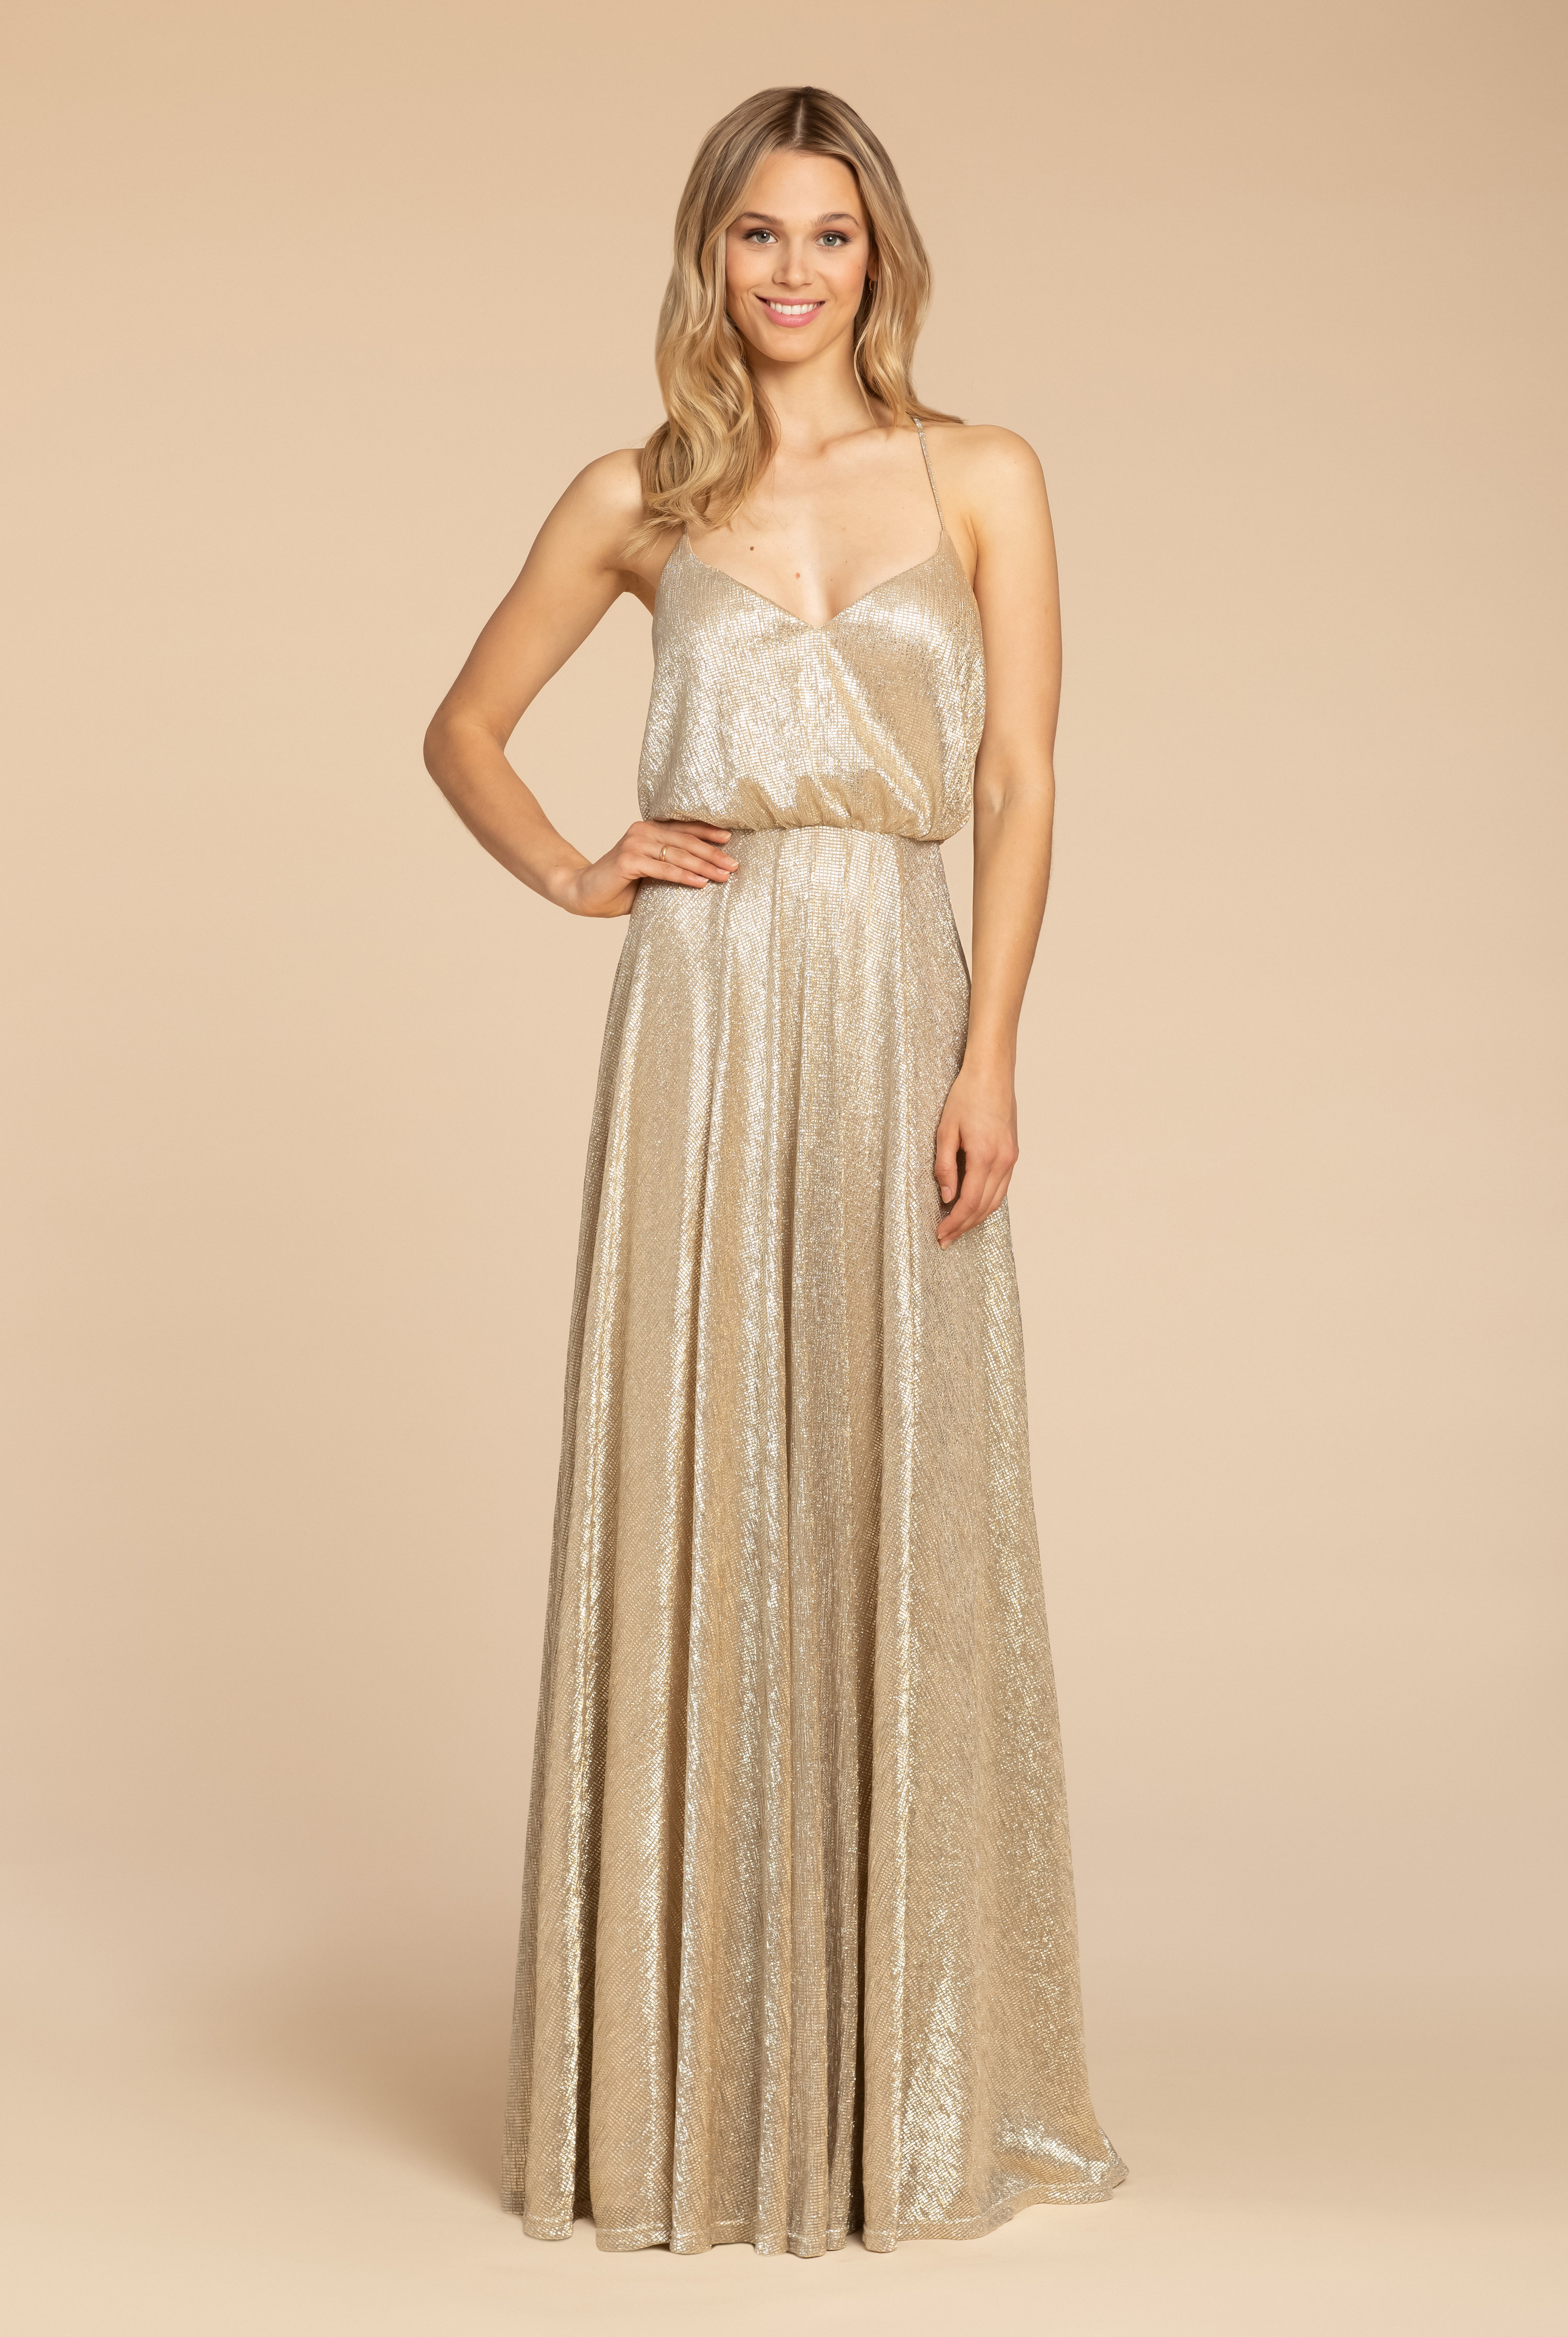 Bridal Gowns and Wedding Dresses by JLM